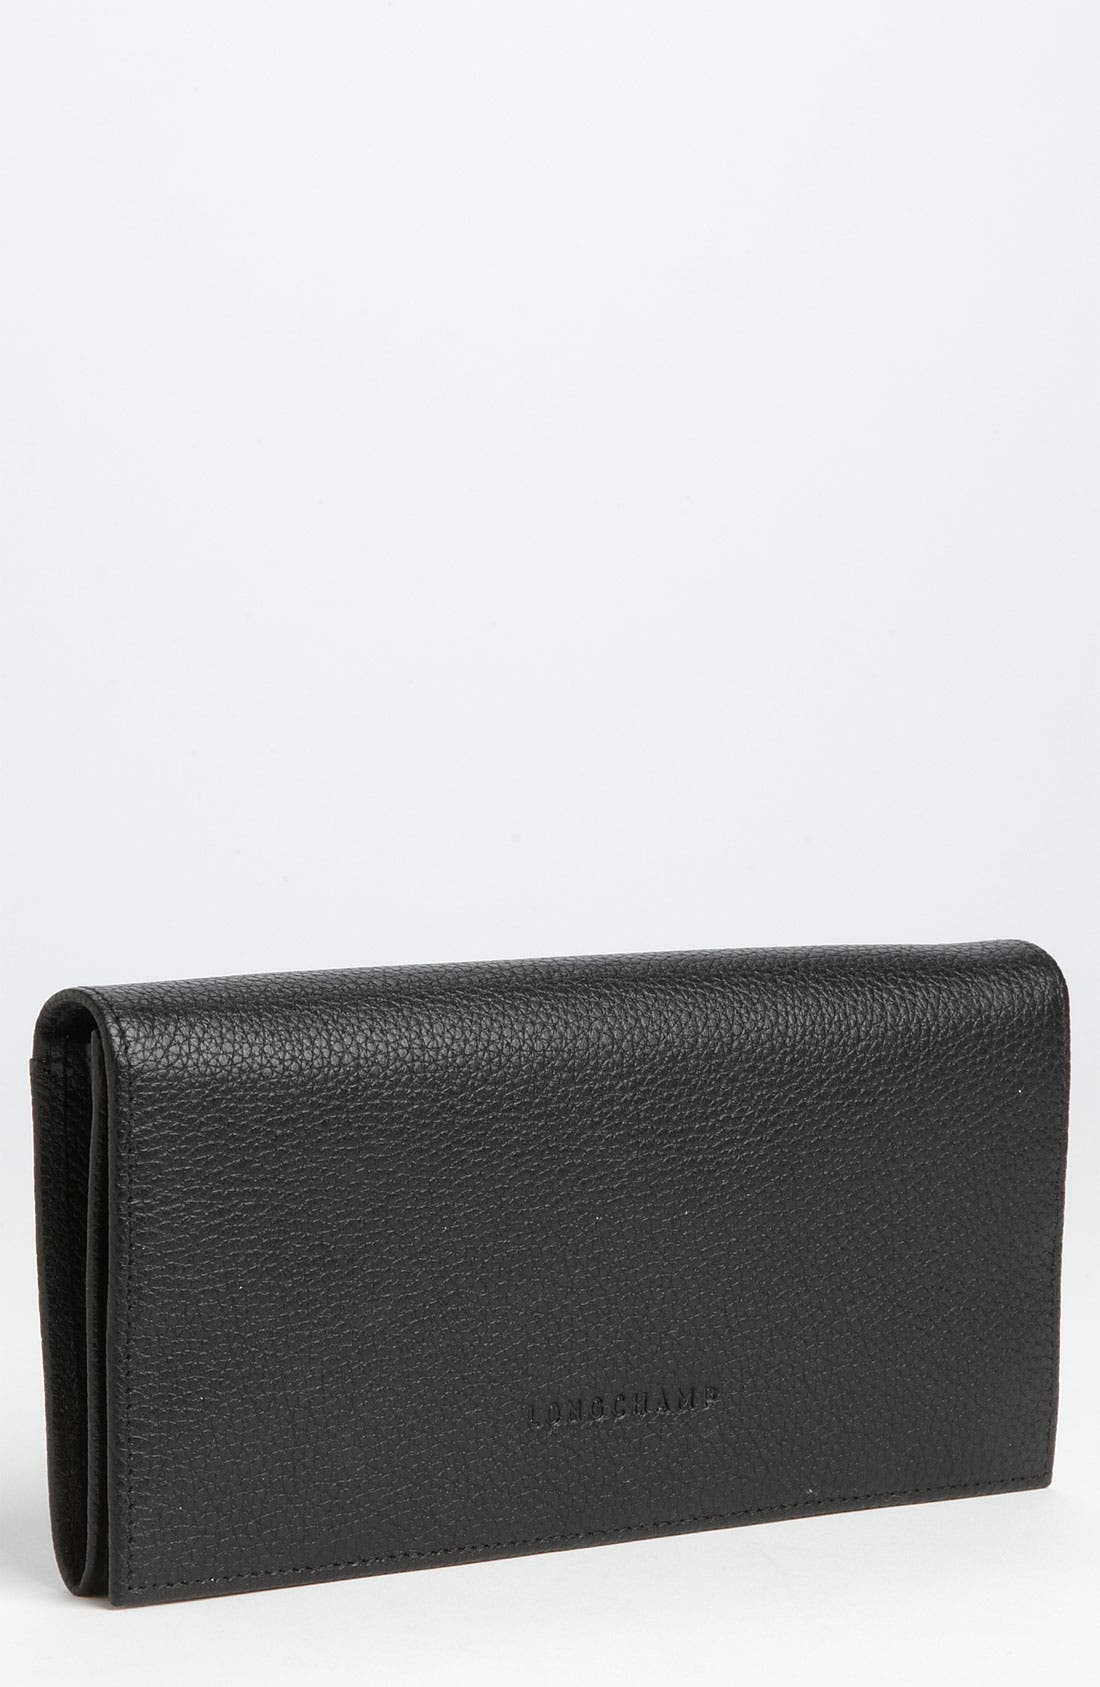 Alternate Image 1 Selected - Longchamp 'Veau' Wallet